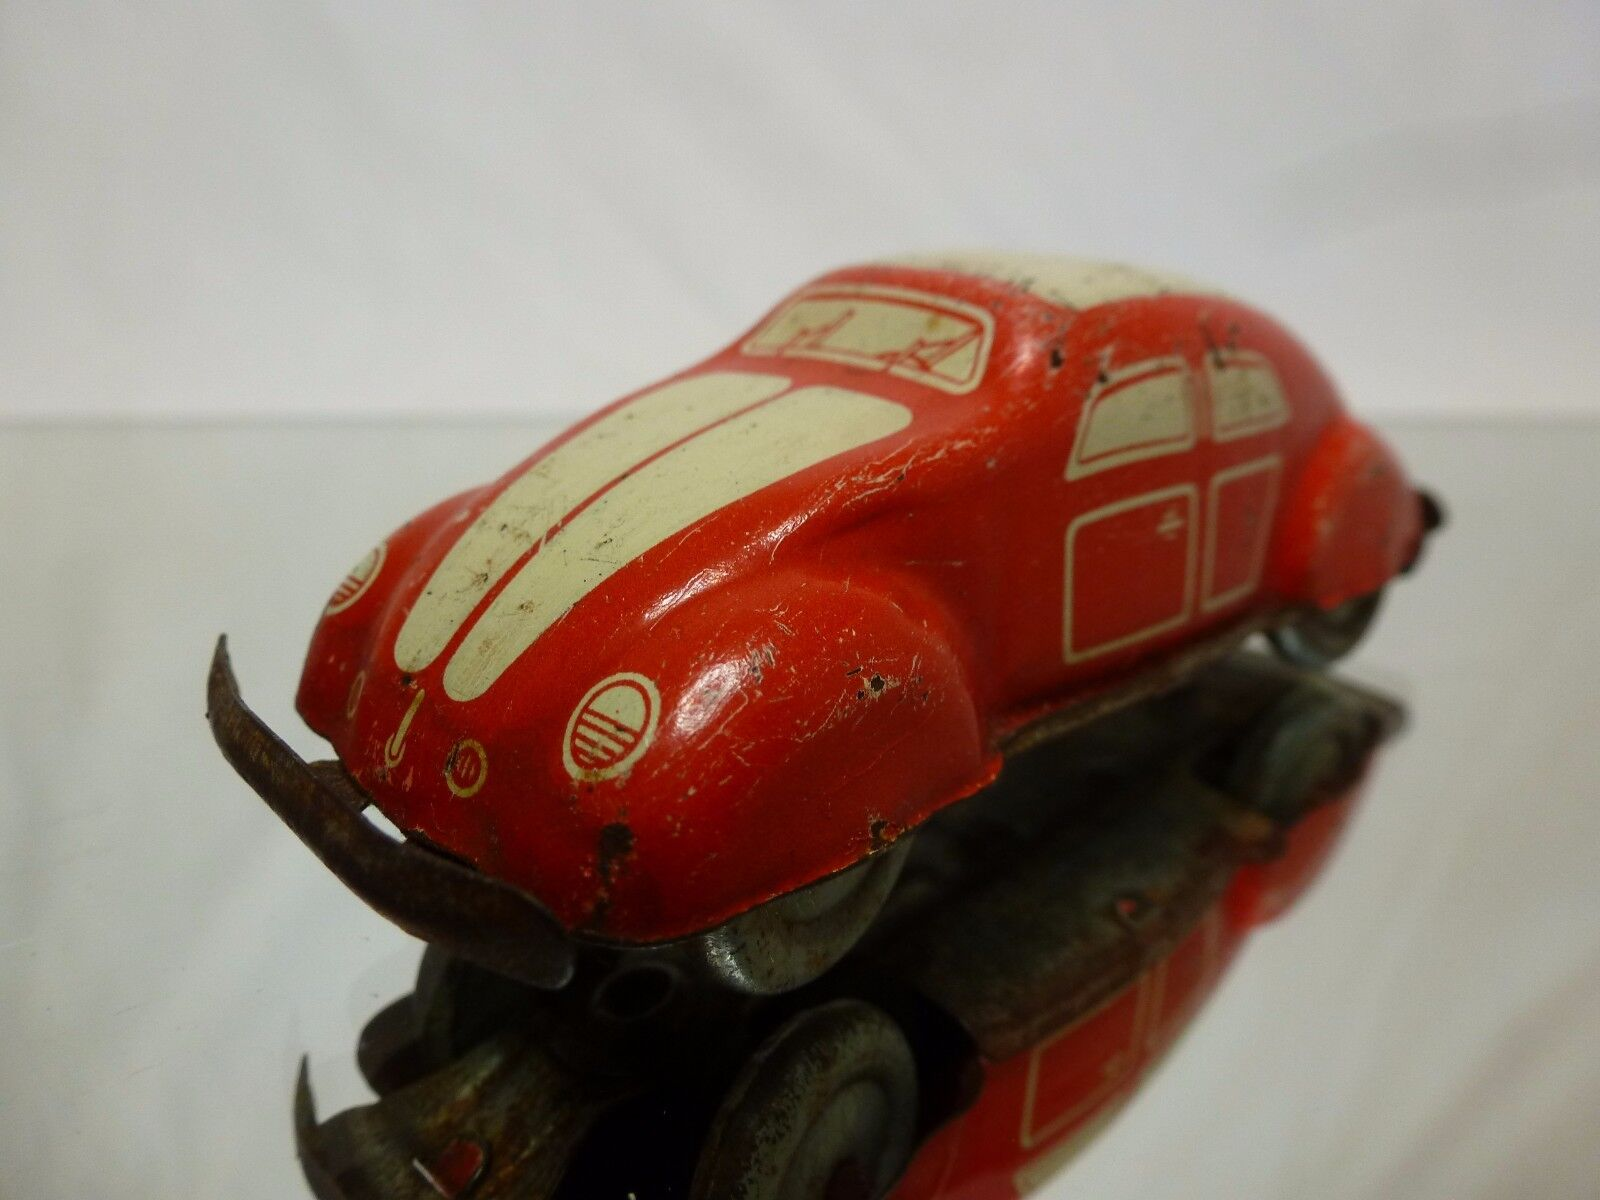 GERMANY US ZONE VW VOLKSWAGEN BEETLE - ROT L10.0cm - EXTREMELY RARE